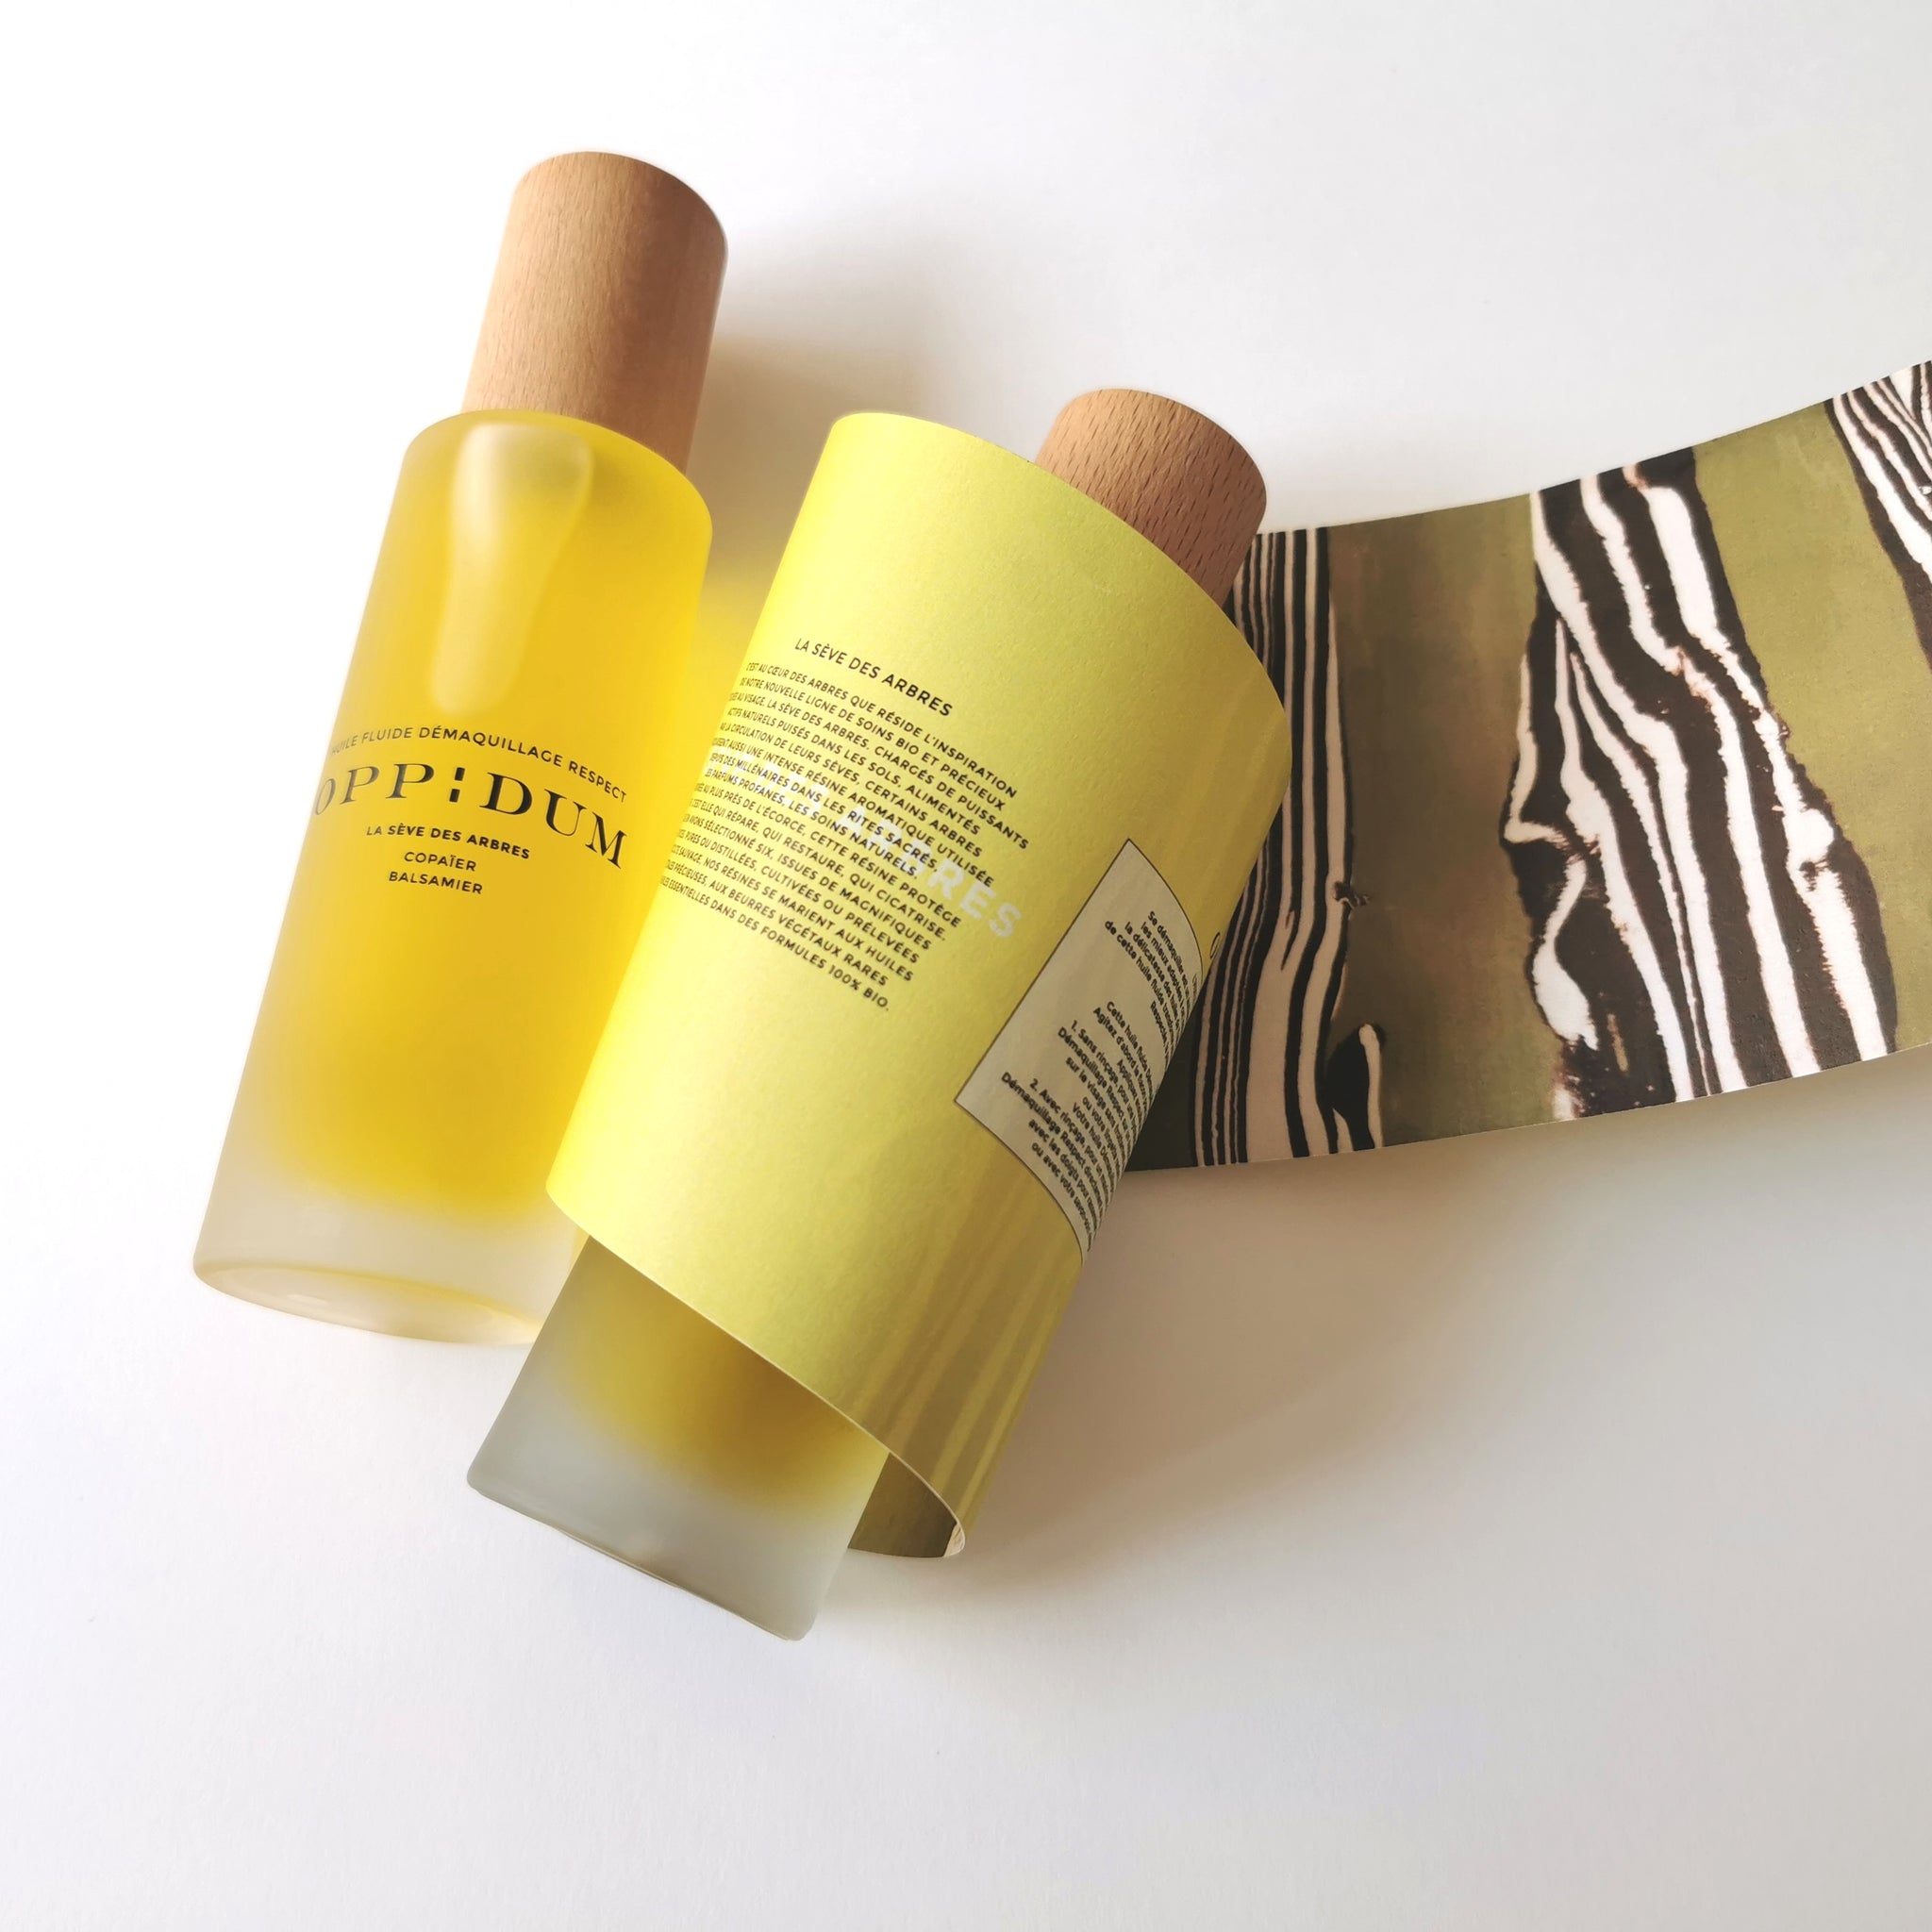 RESPECT CLEANSING OIL - La Sève Des Arbres collection